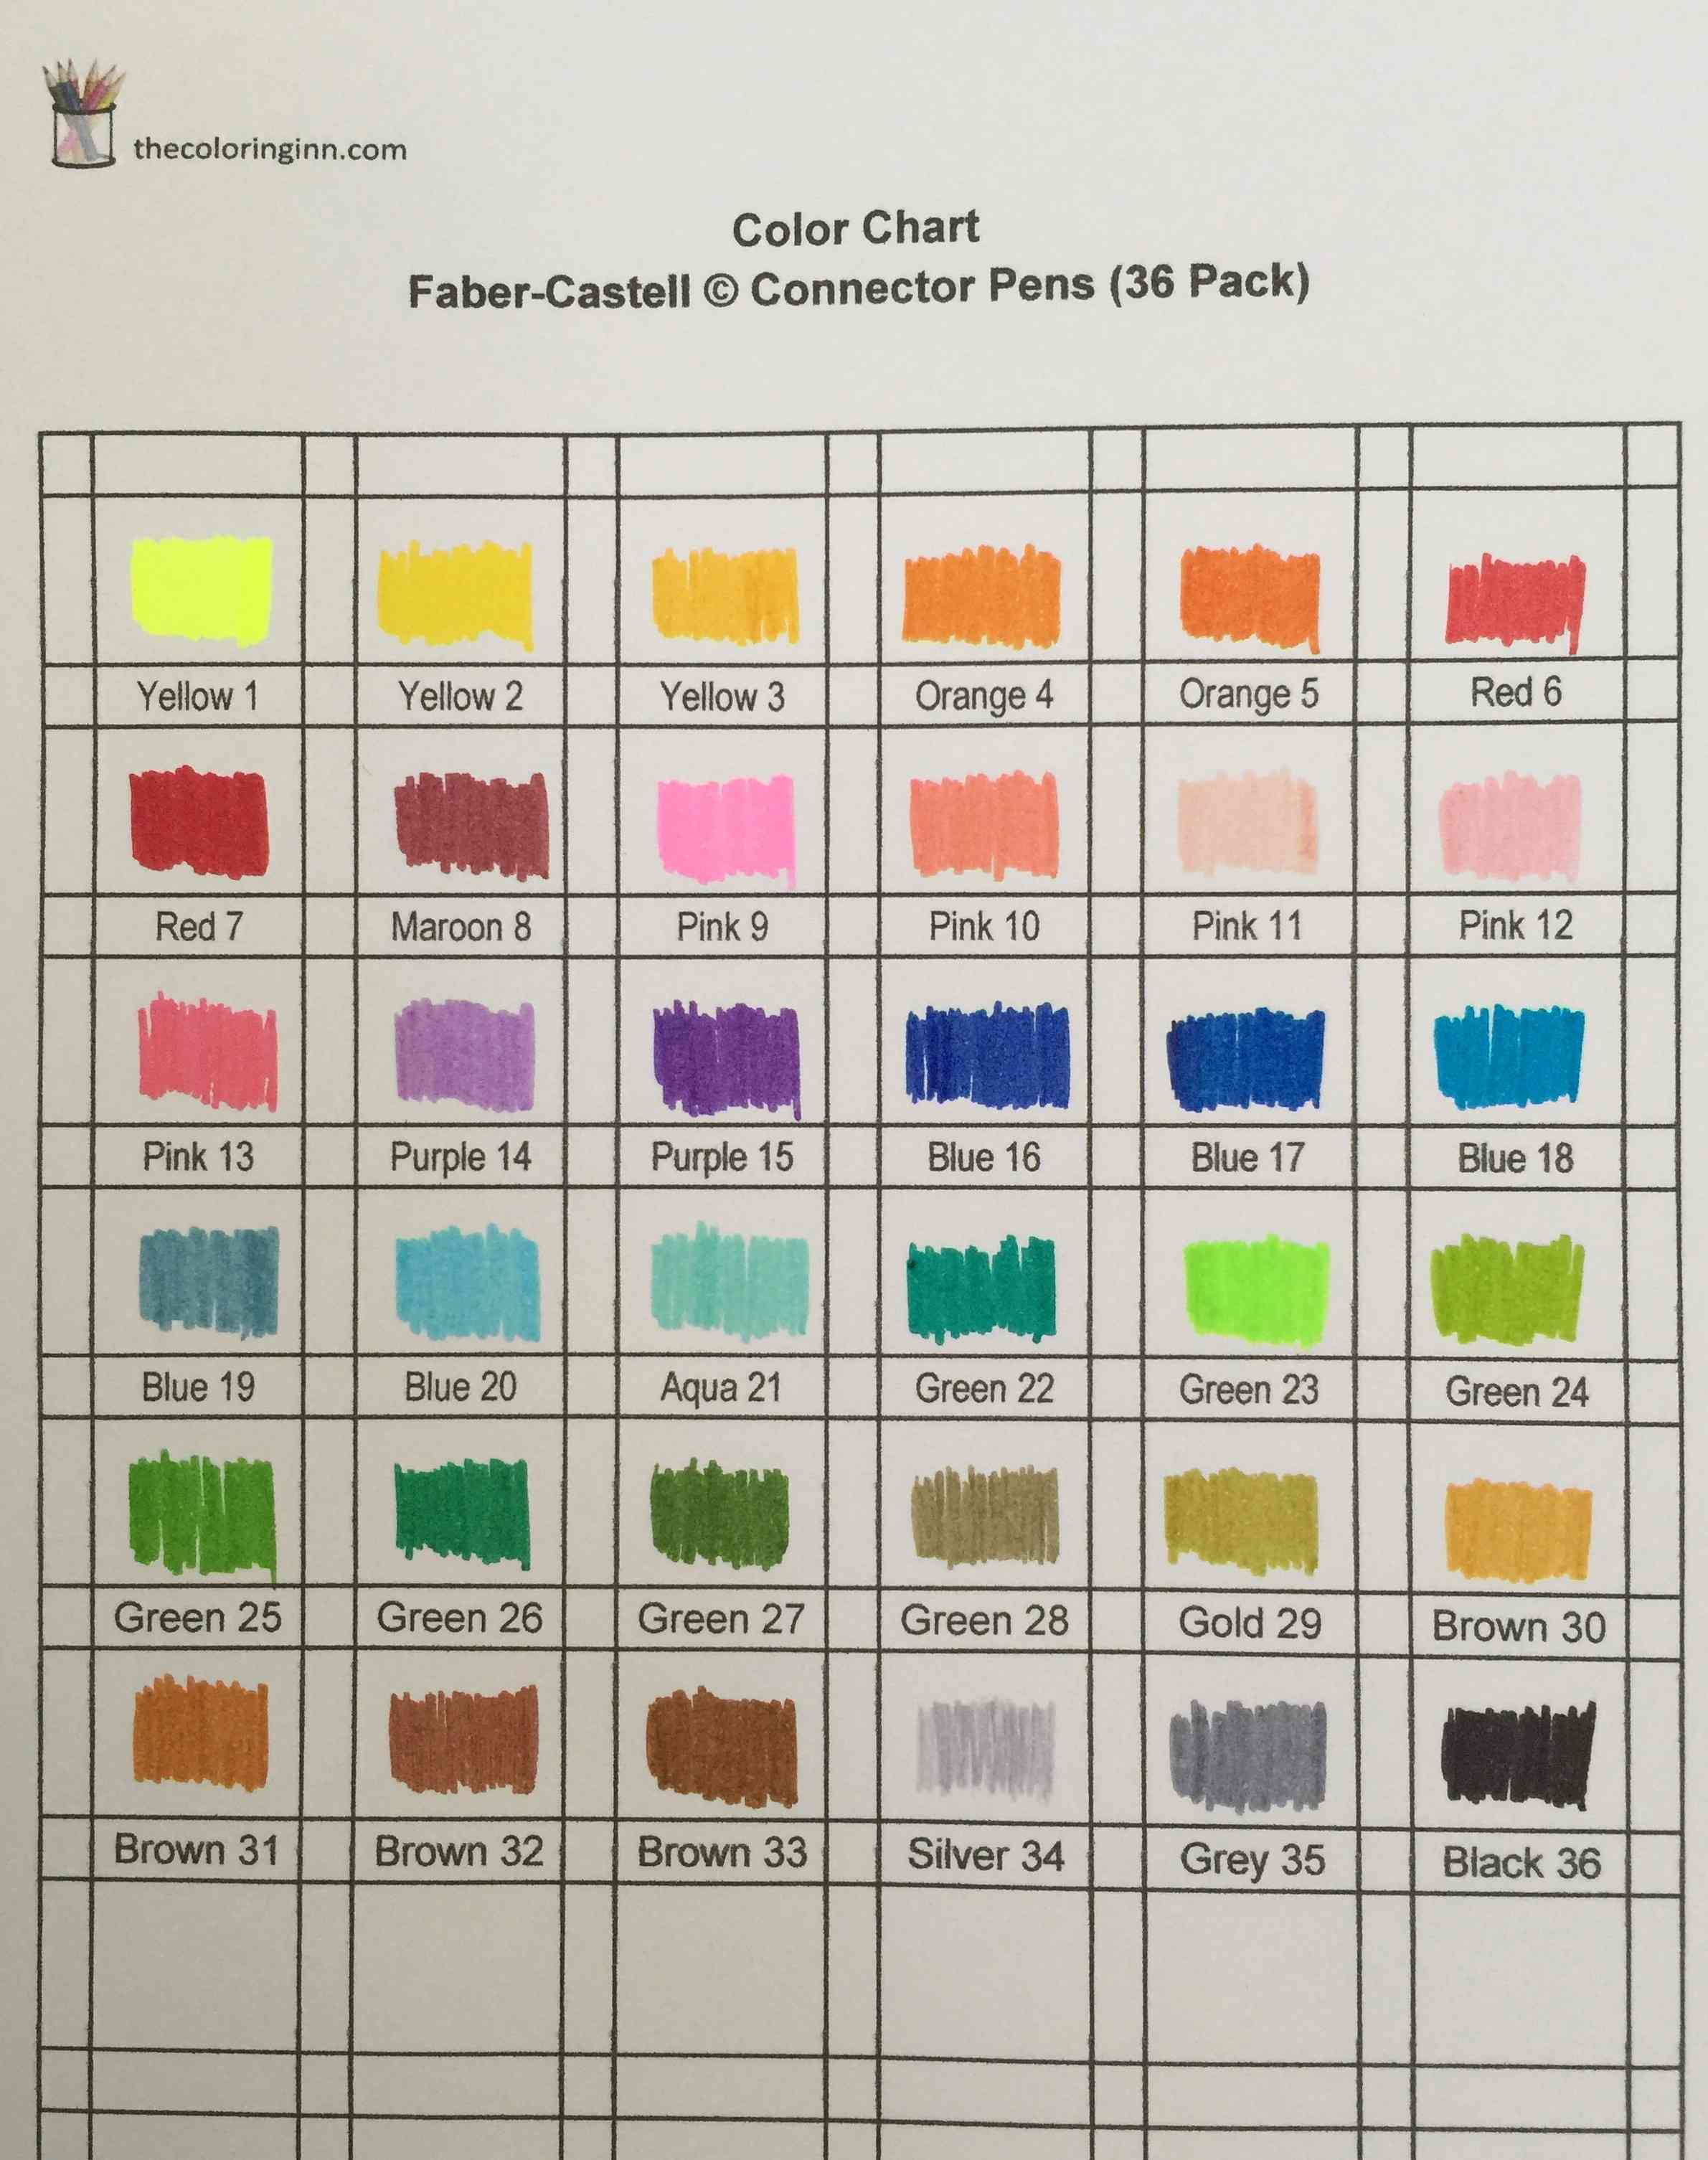 Color Charts For Marker Pens The Coloring Inn Staedtler Triplus Fibre Tip Pen 323 20 Magenta Fineliners 334 Chart Faber Castell Connector